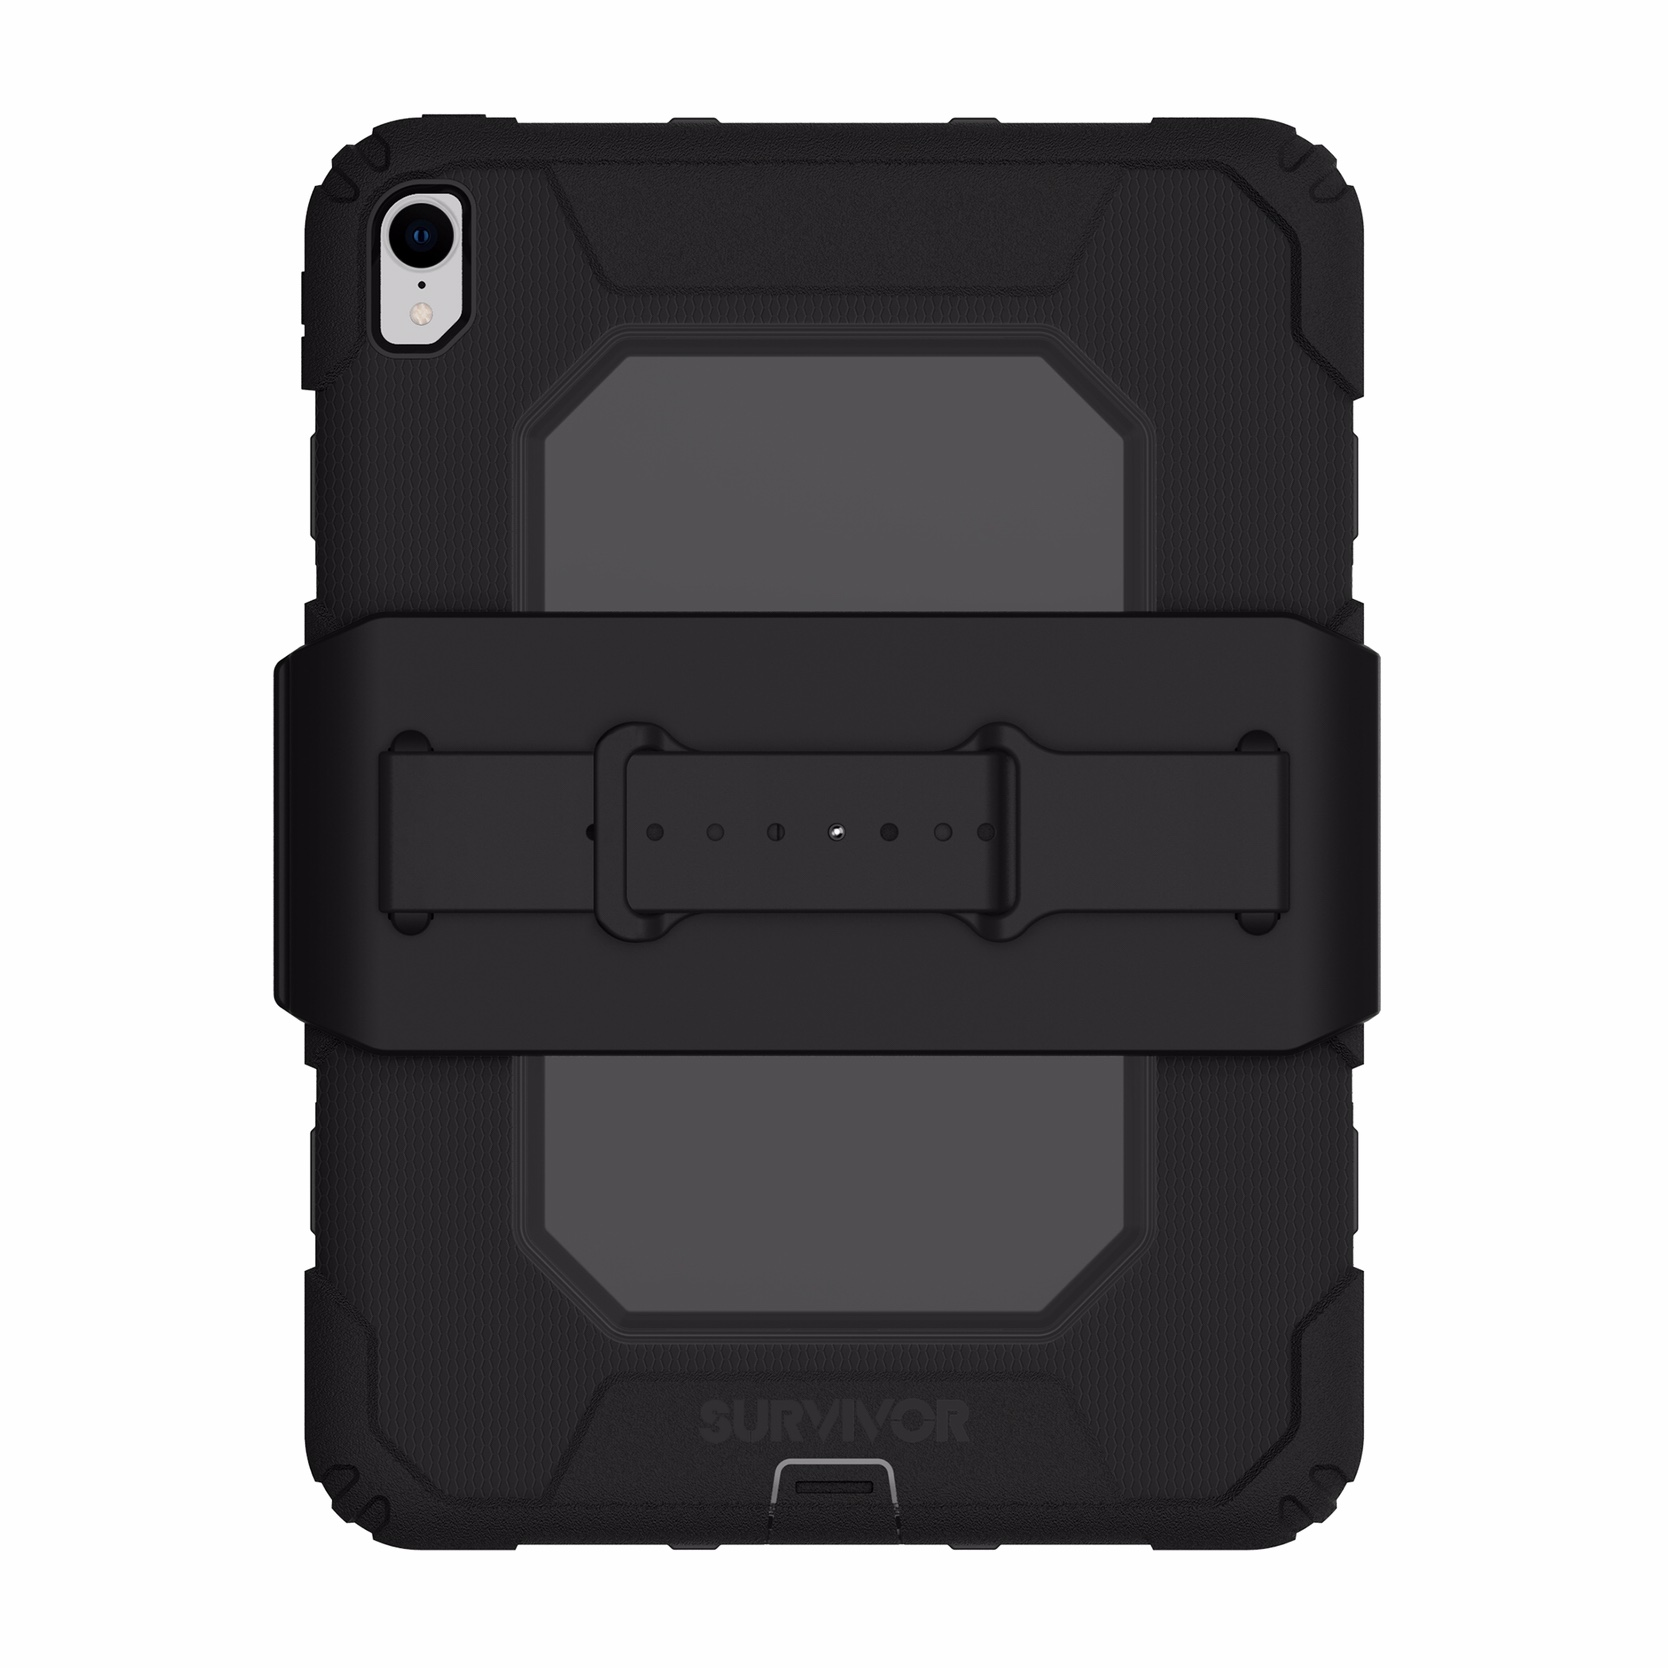 Survivor All Terrain iPad PRO 11 pouces Coque de protection renforcee Sangle main et film rigide ecran